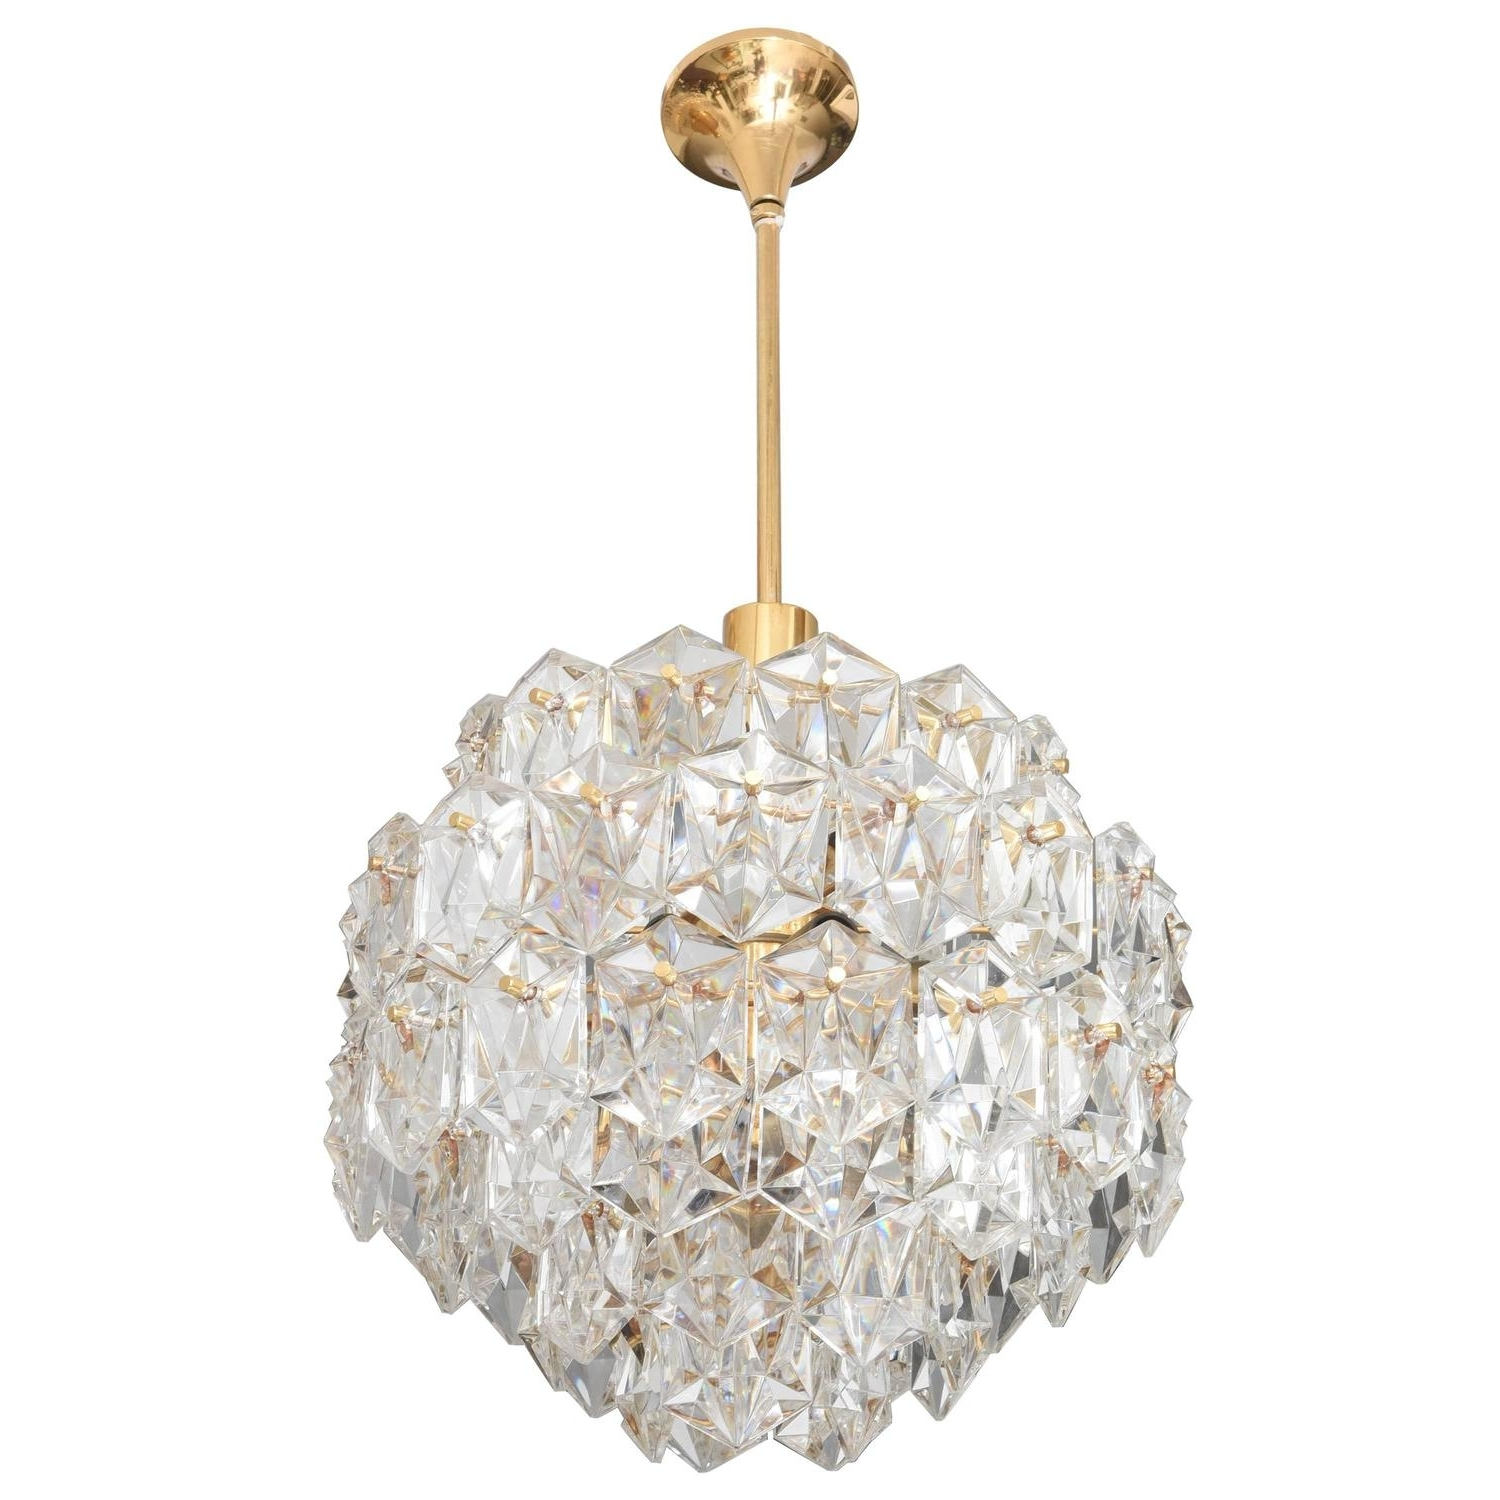 Gold Modern Chandelier Inside Most Up To Date Mid Century Modern Chandelier, Gold Plated With Molded Crystals (View 3 of 15)